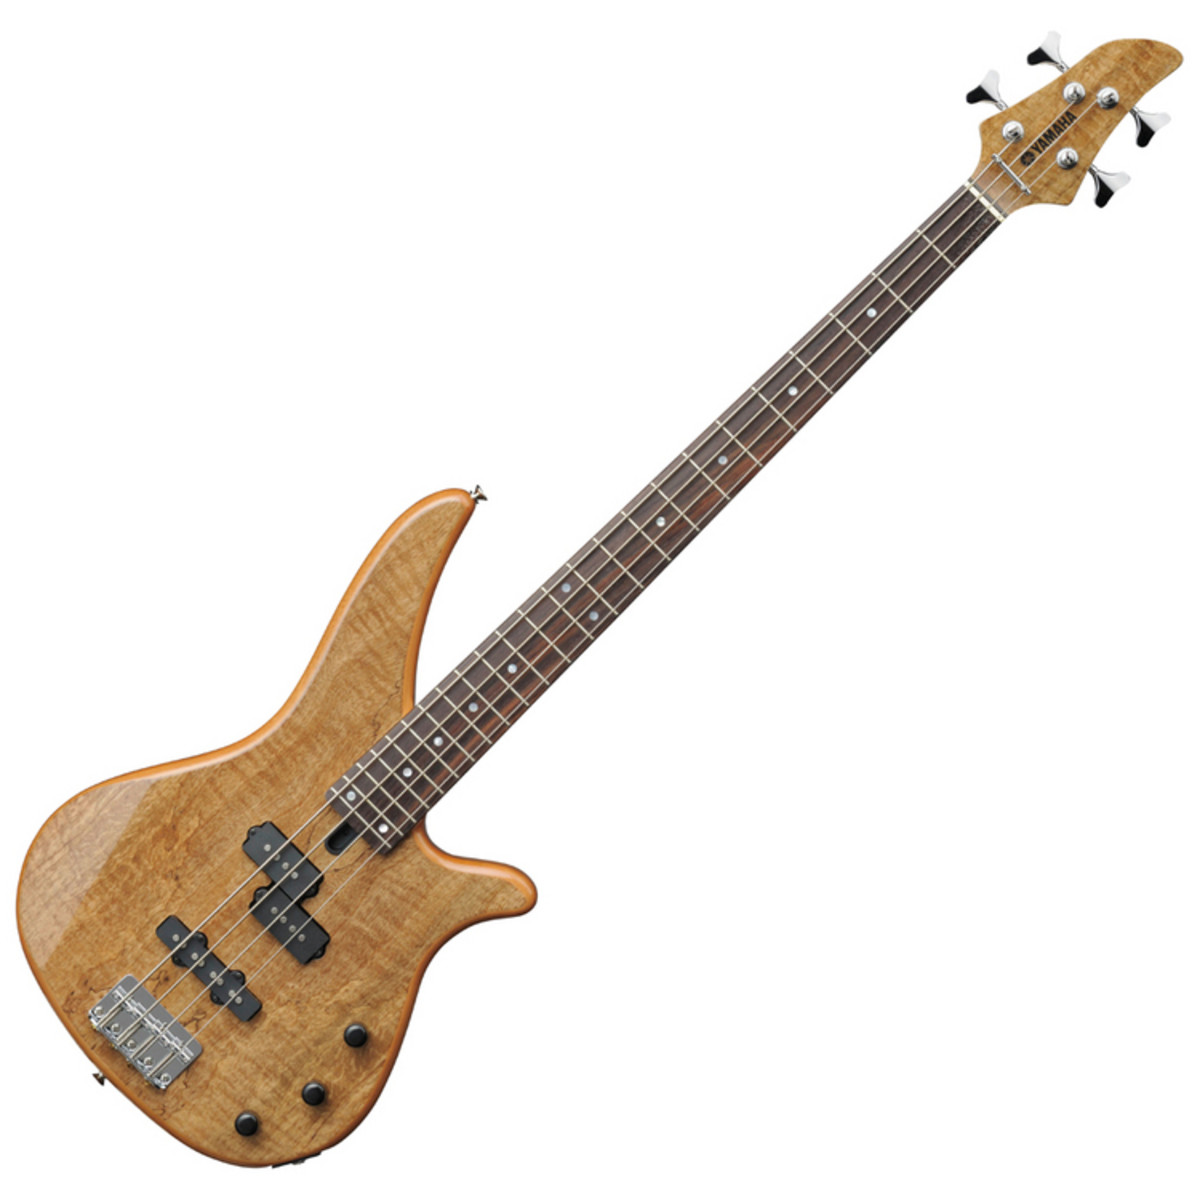 disc yamaha rbx170ew exotic wood bass guitar natural at. Black Bedroom Furniture Sets. Home Design Ideas